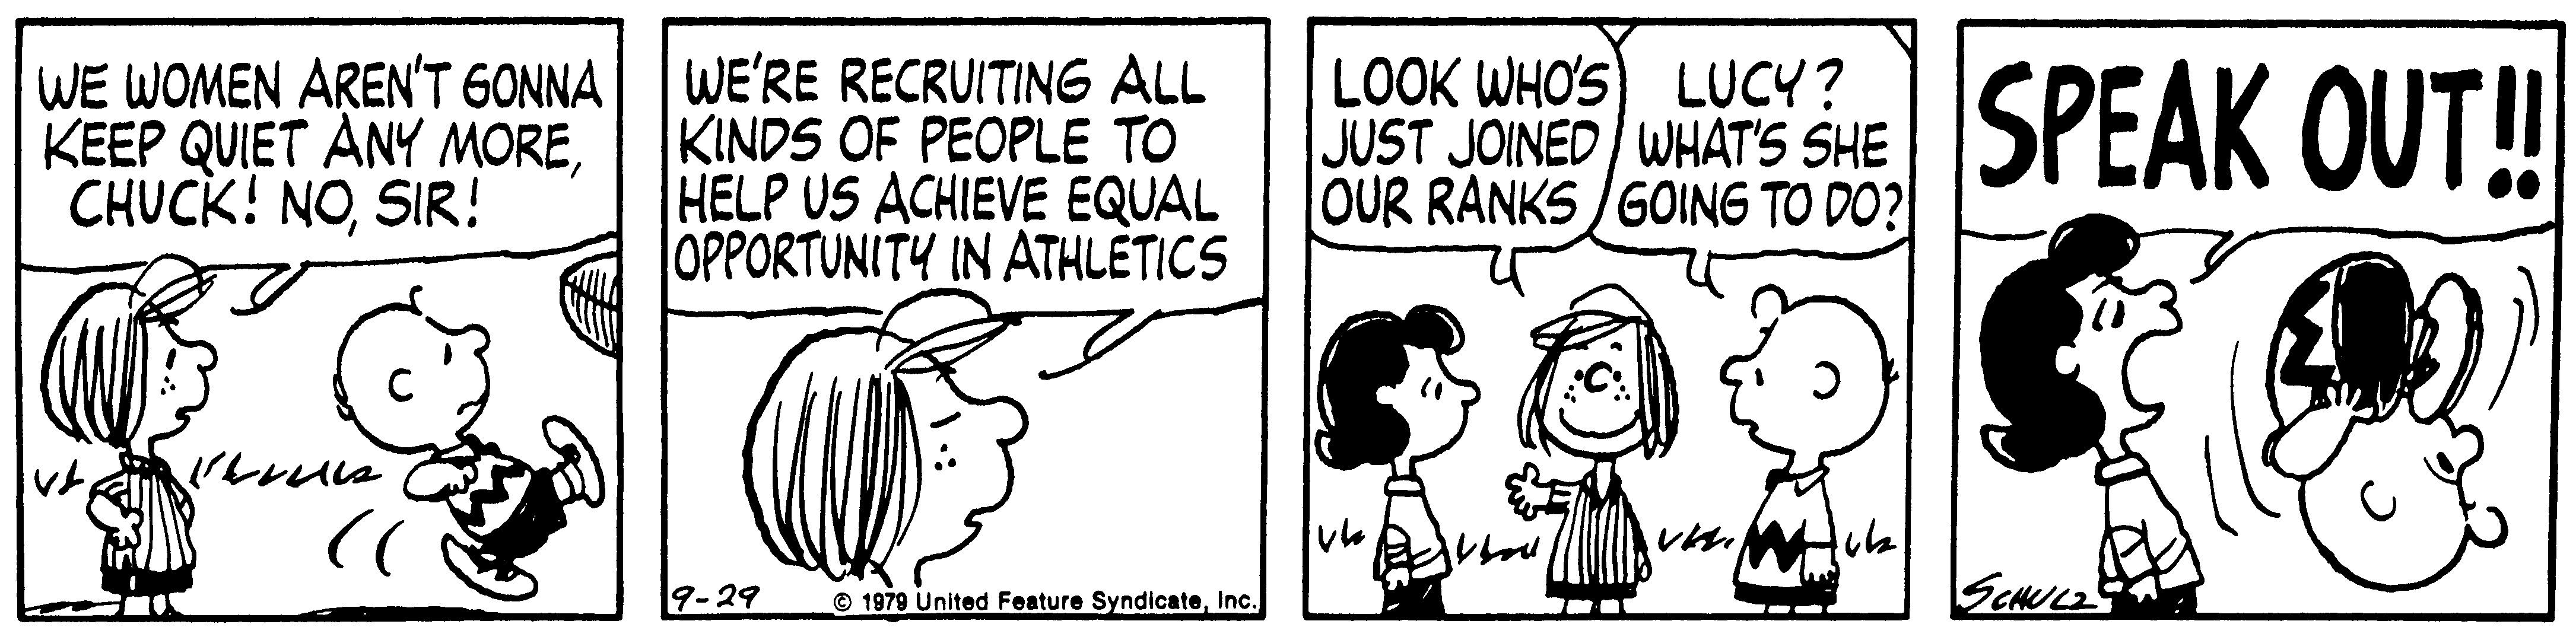 Peppermint Patty: Peanuts character became female sports